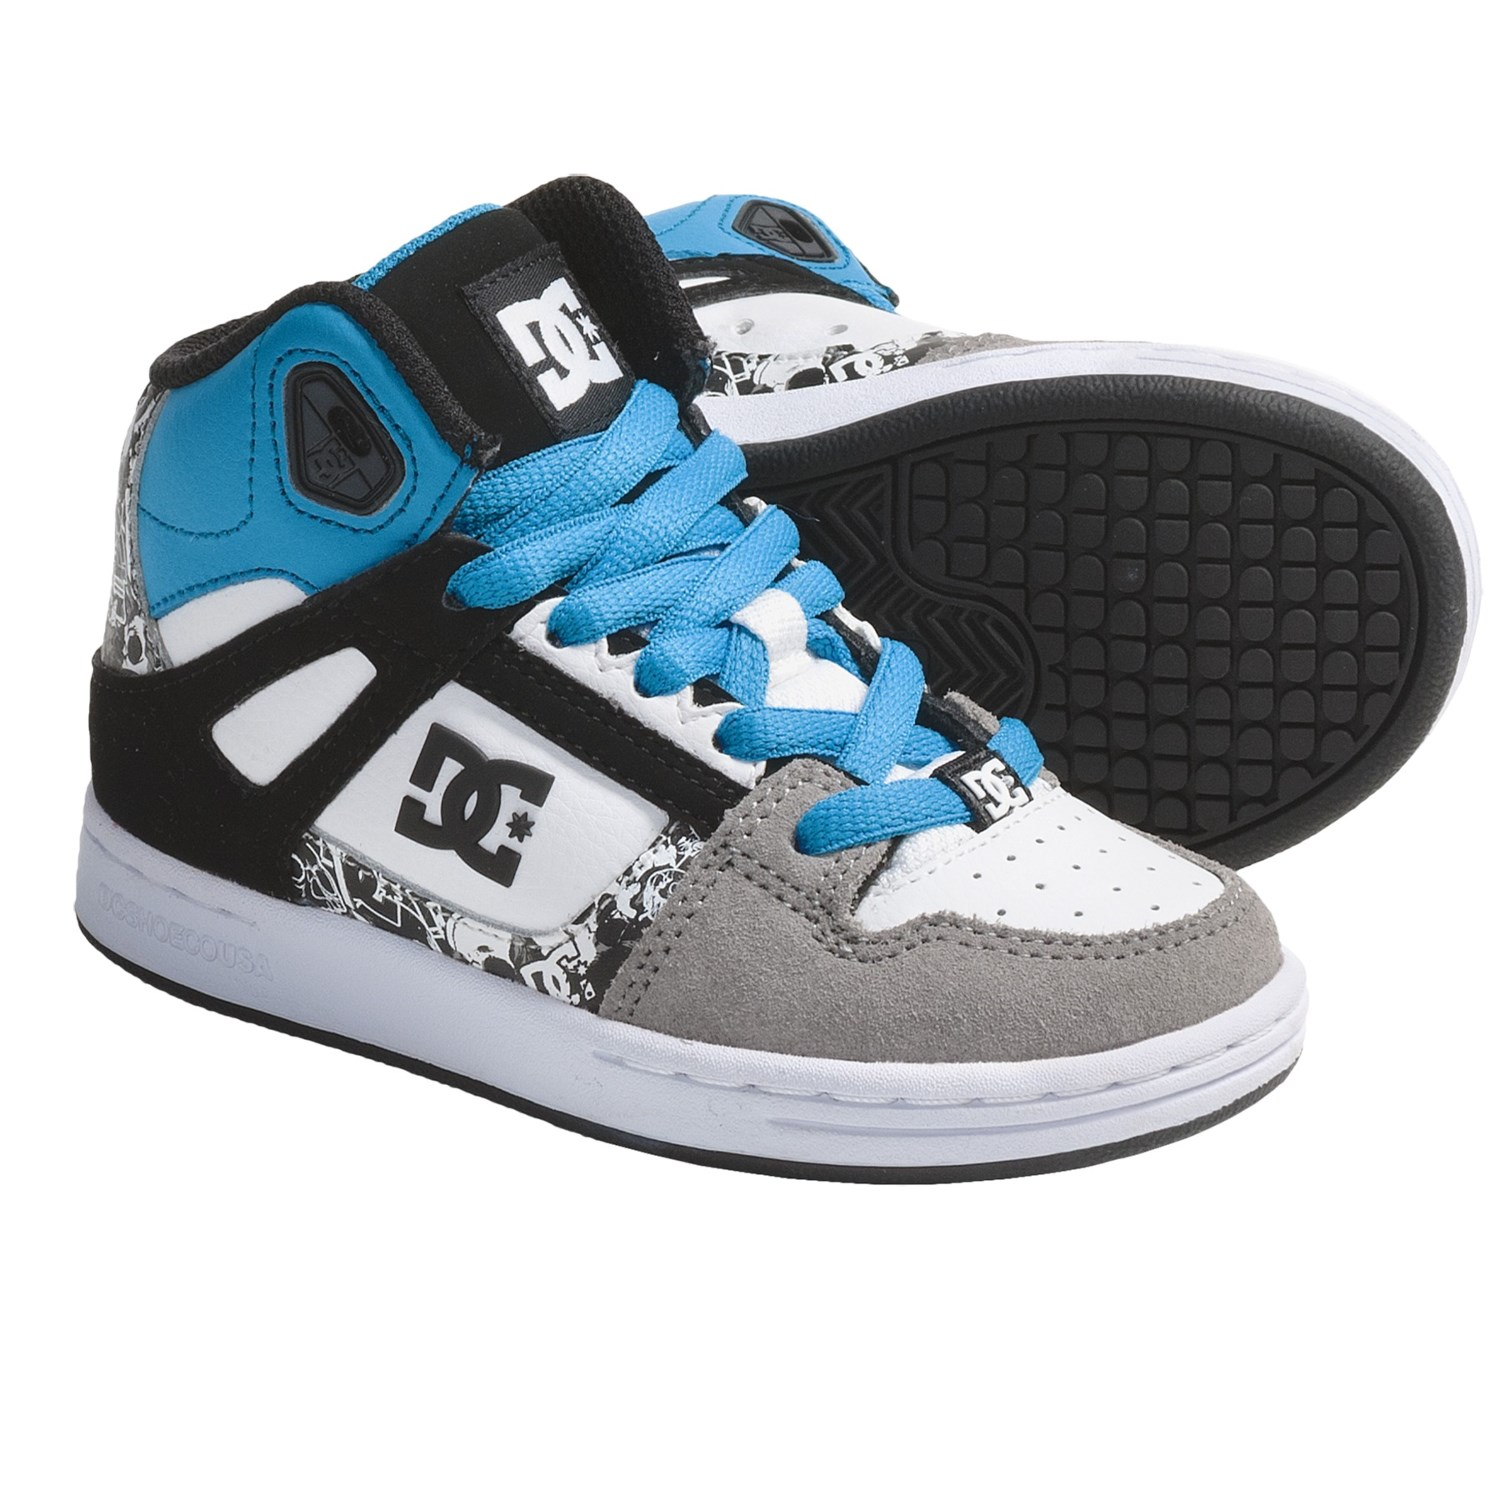 Boys' Shoes: Free Shipping on orders over $45 at reformpan.gq - Your Online Boys' Shoes Store! Get 5% in rewards with Club O!